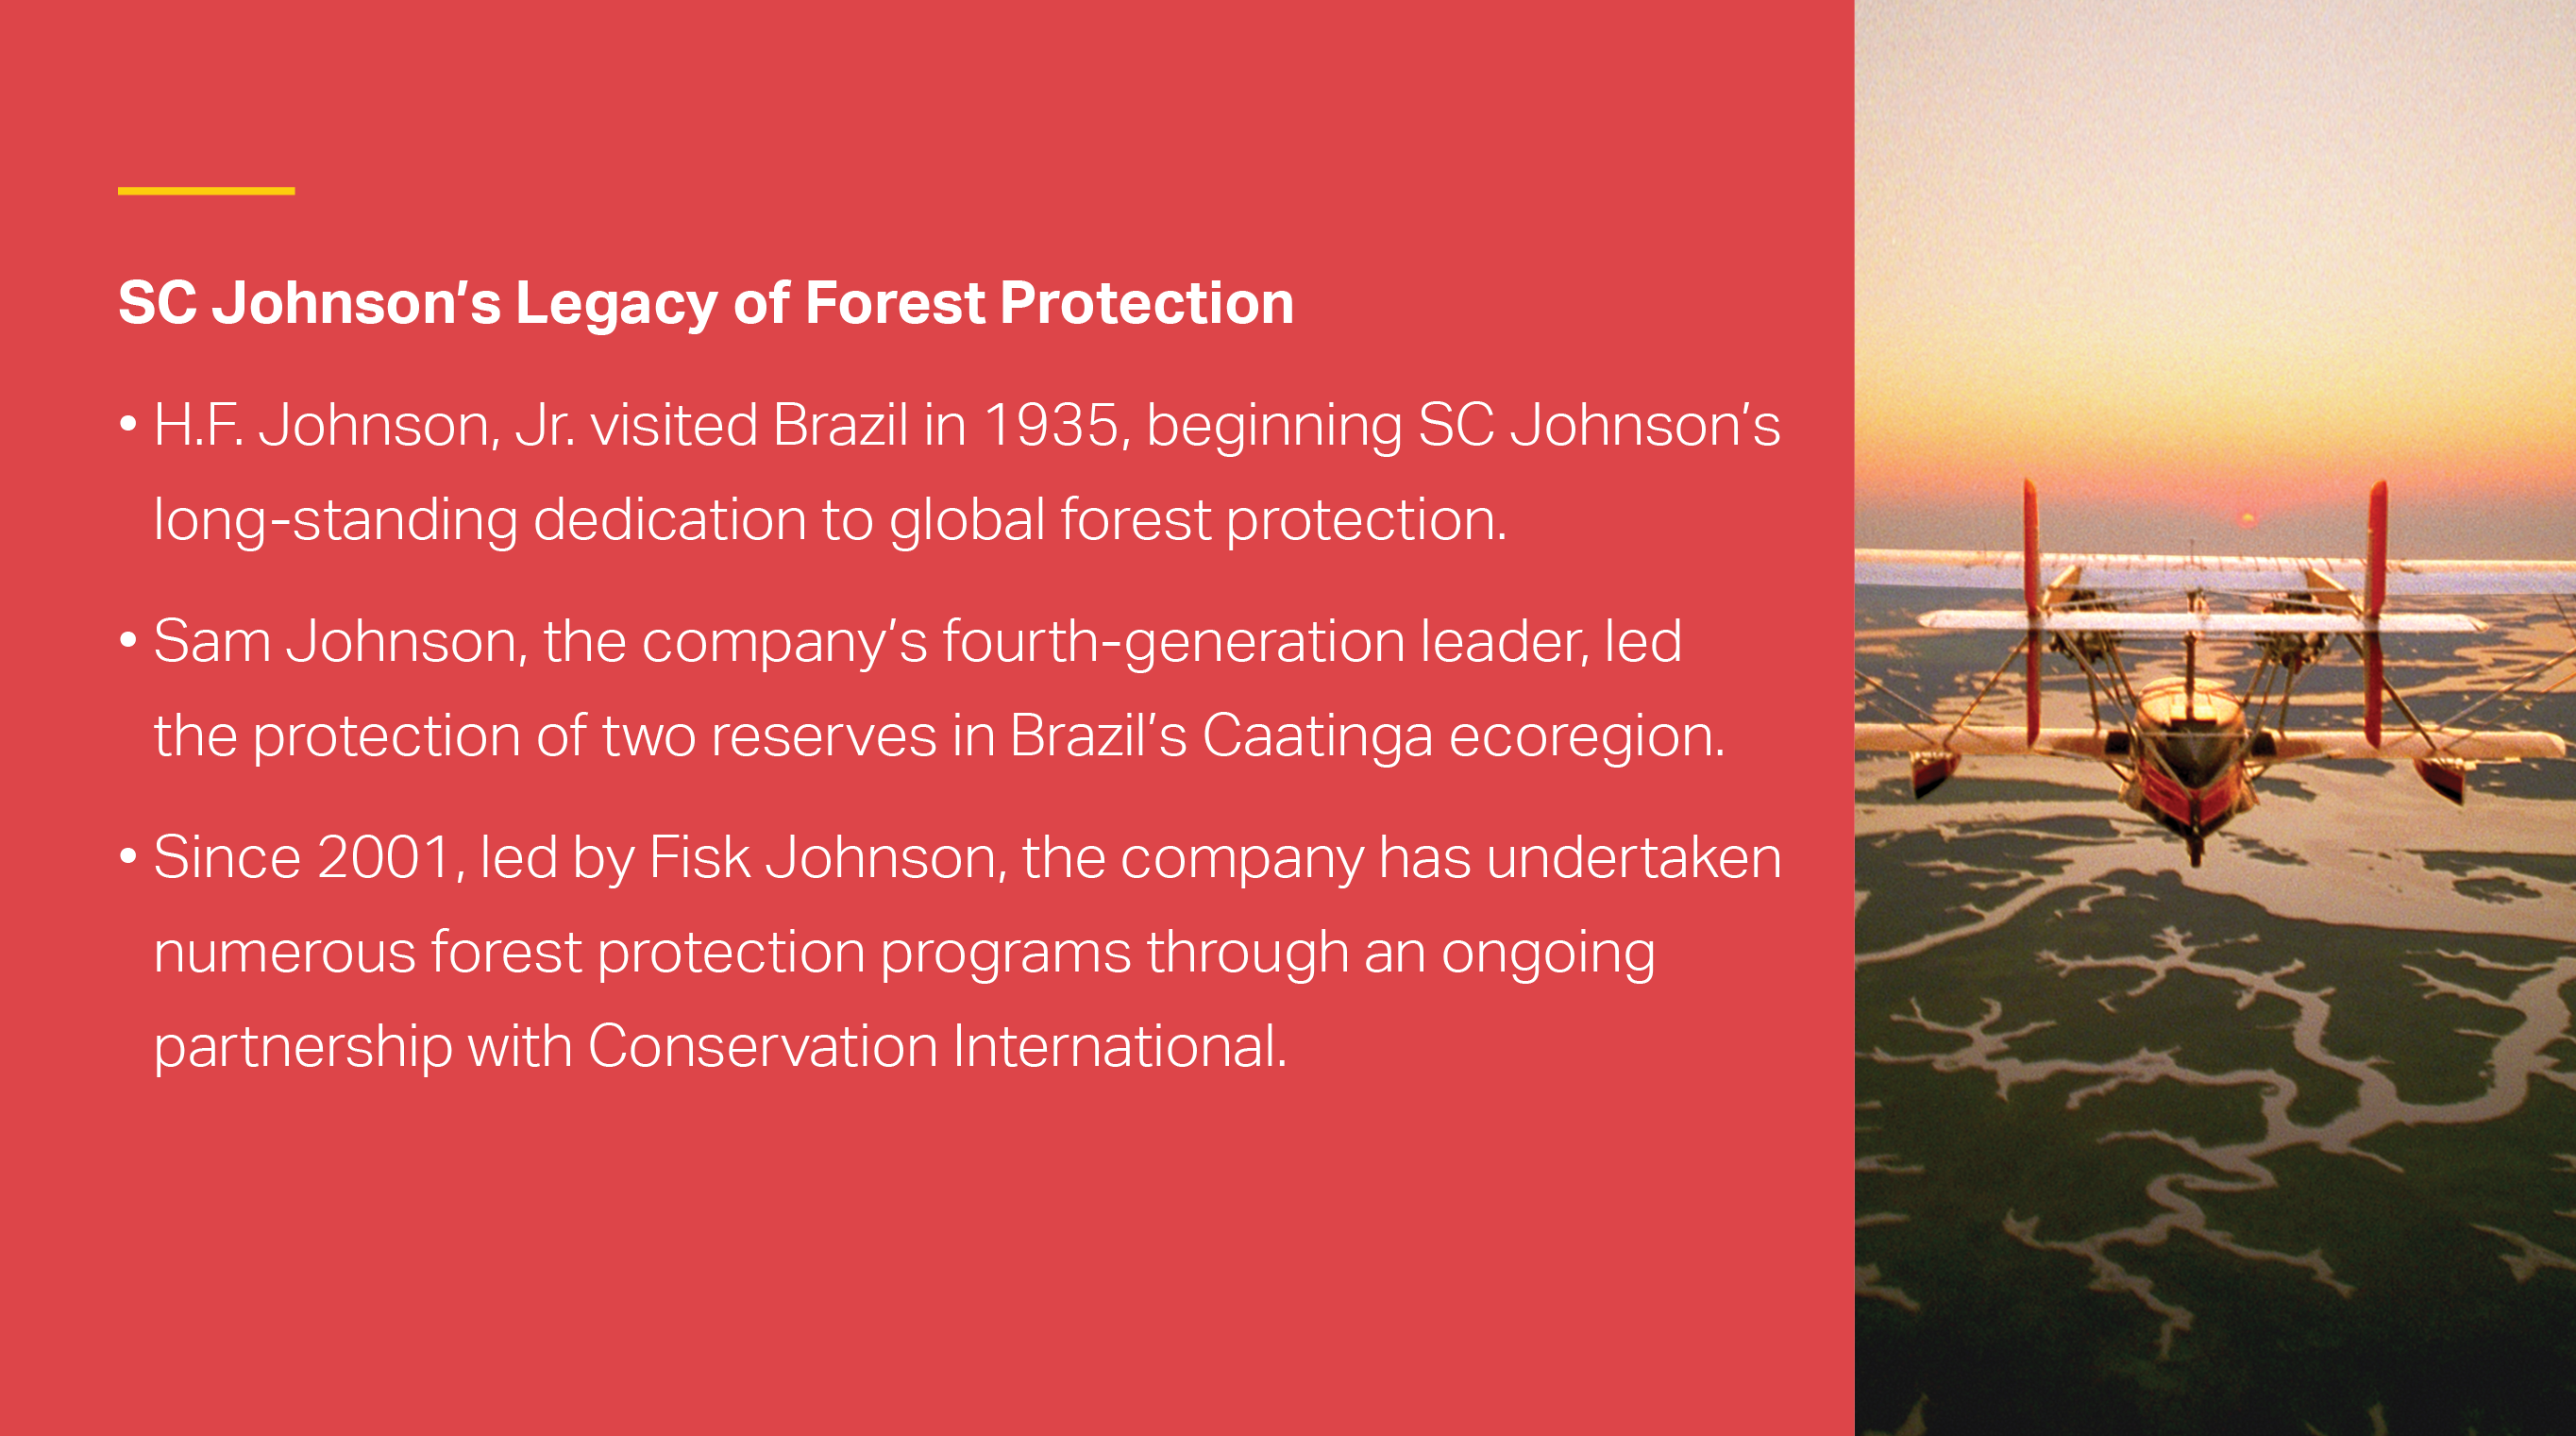 infographic tile: rainforest and river. Text reads: SC Johnson working with Conservation International had conserved more than 100,000 acres of tropical forest.